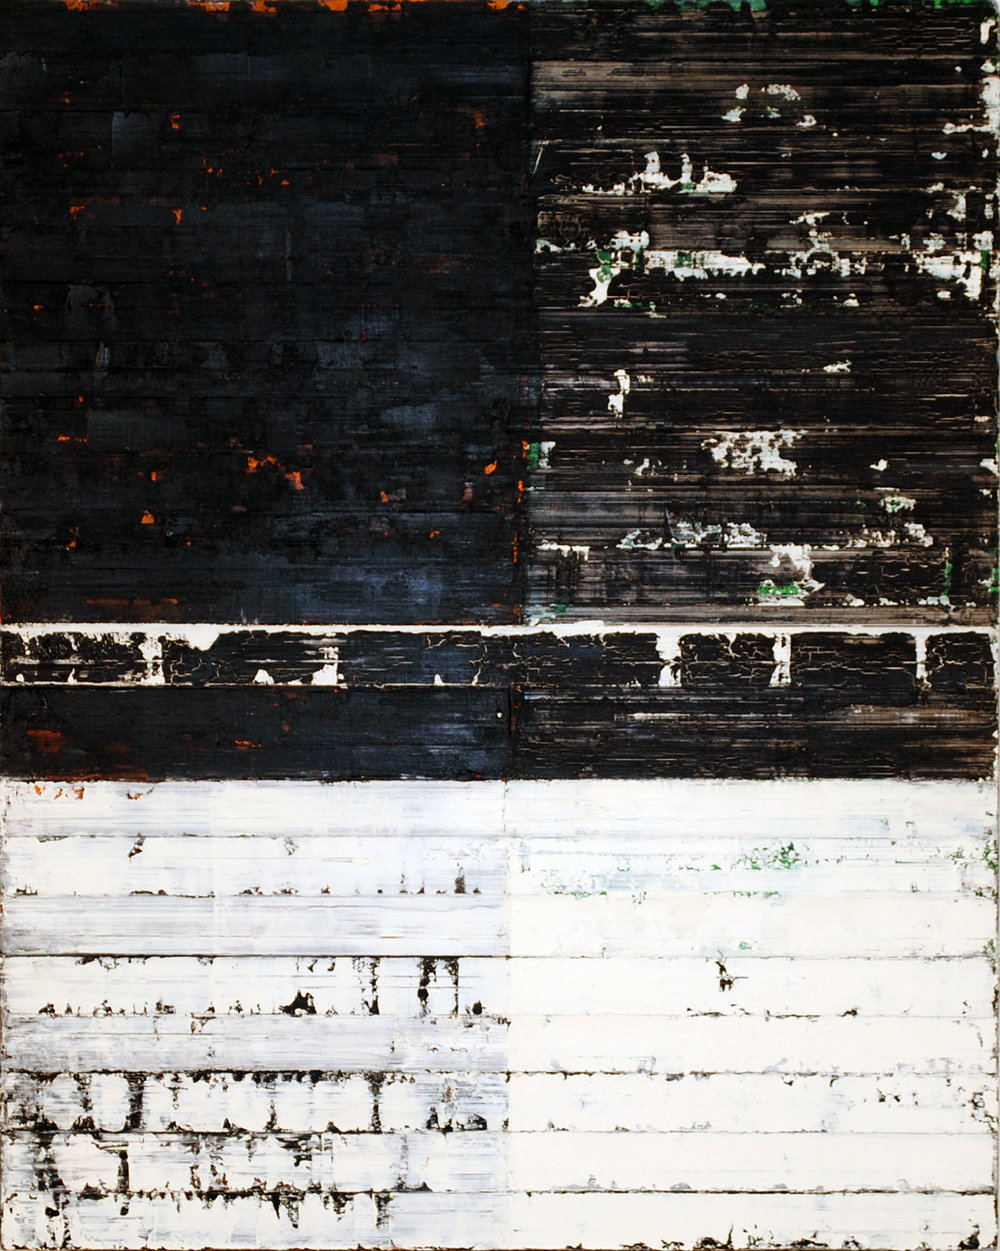 ISIS 18: Perimeter, 2010, Oil on canvas over panel, 20 x 18 inches.